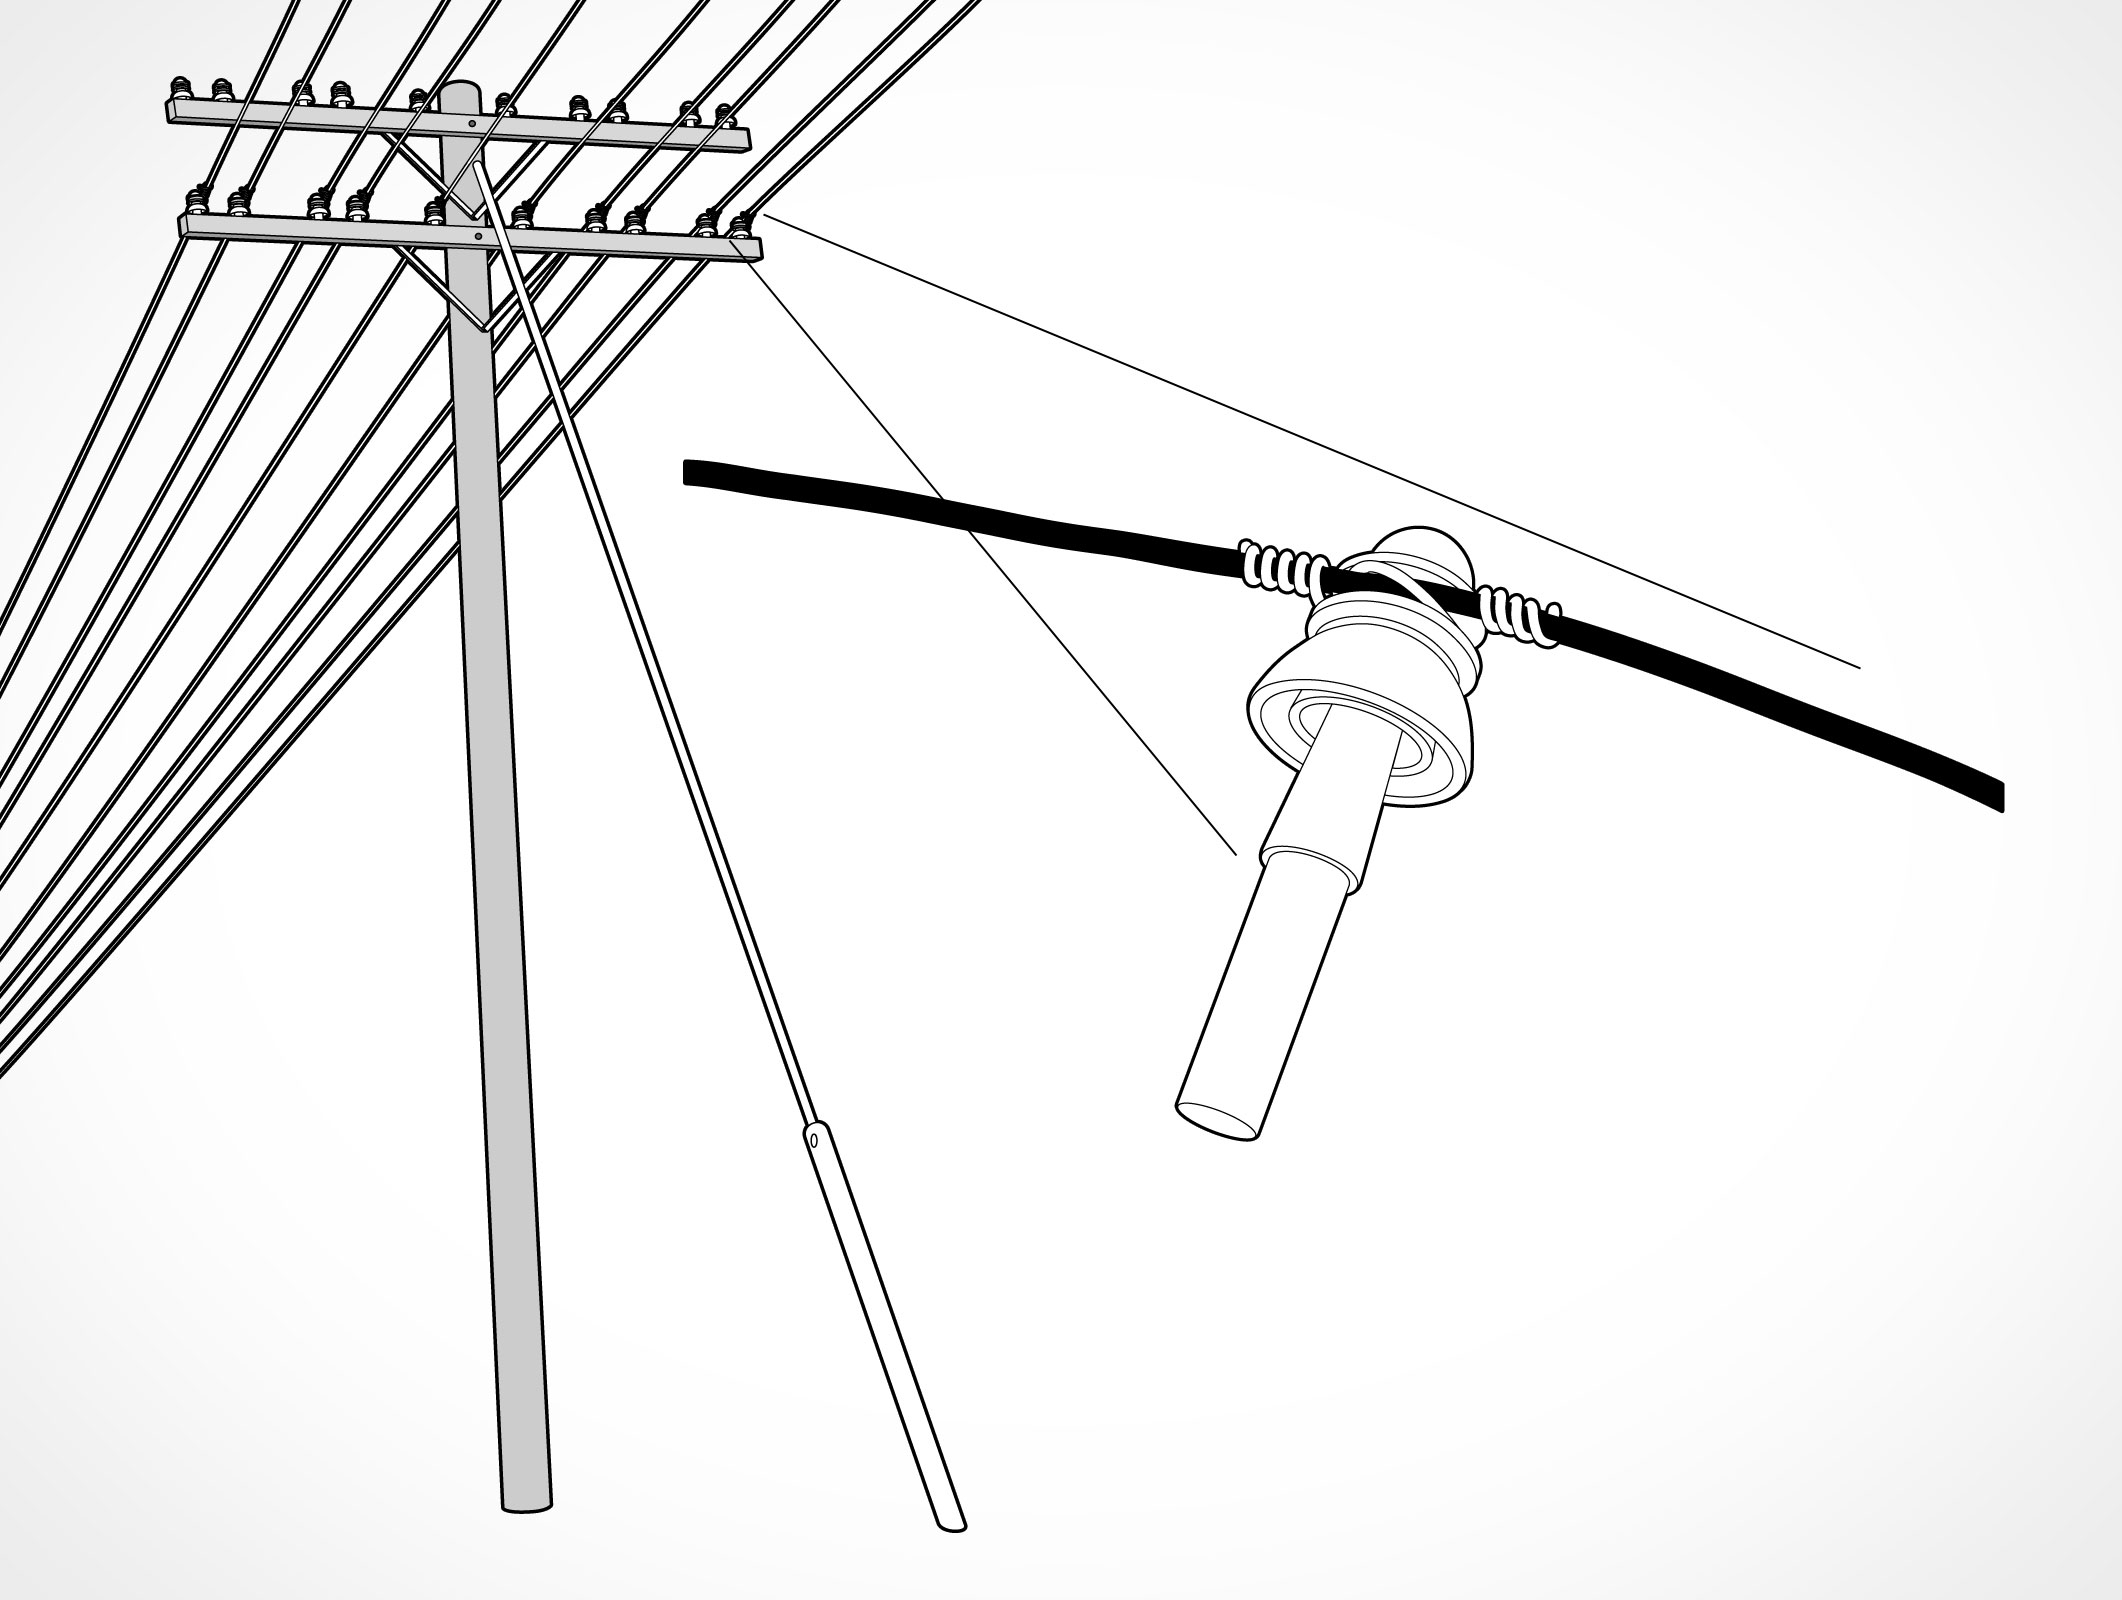 Guy Wire Electrical Post